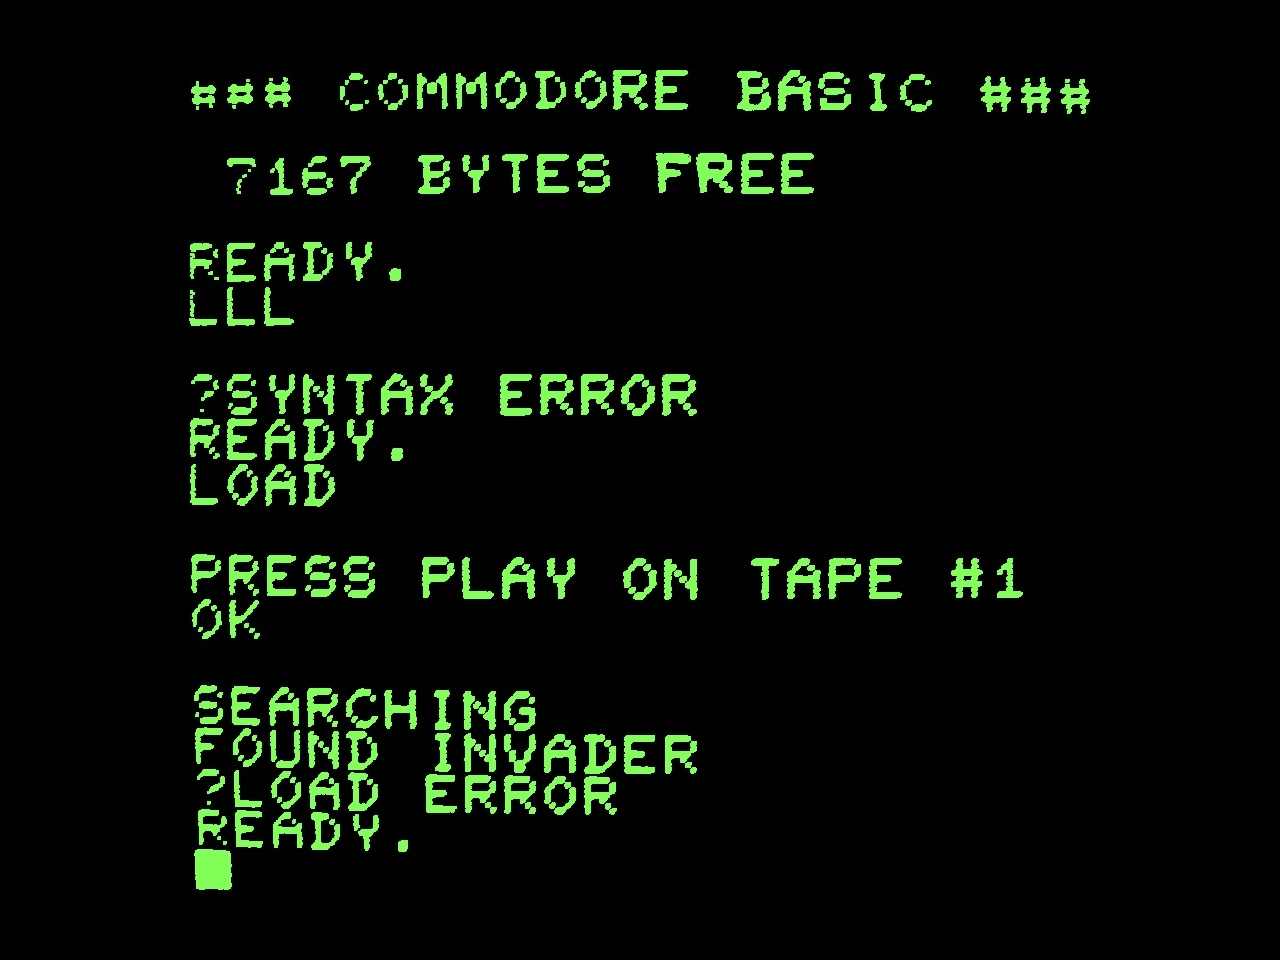 Basic: скриншот Commodore Basic